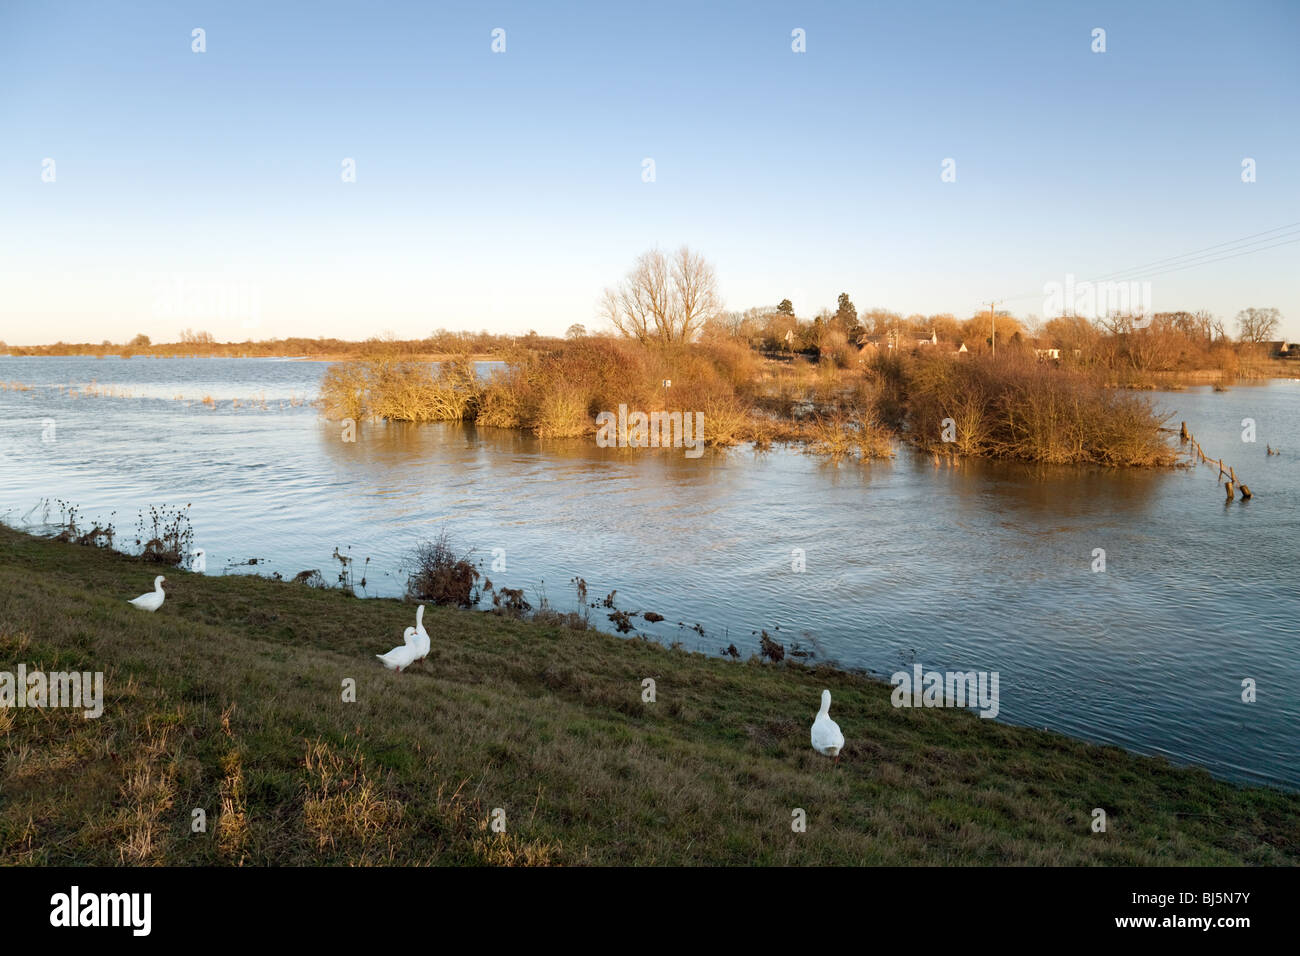 A view across the fens near Ely, Cambridgeshire, East Anglia, UK - Stock Image